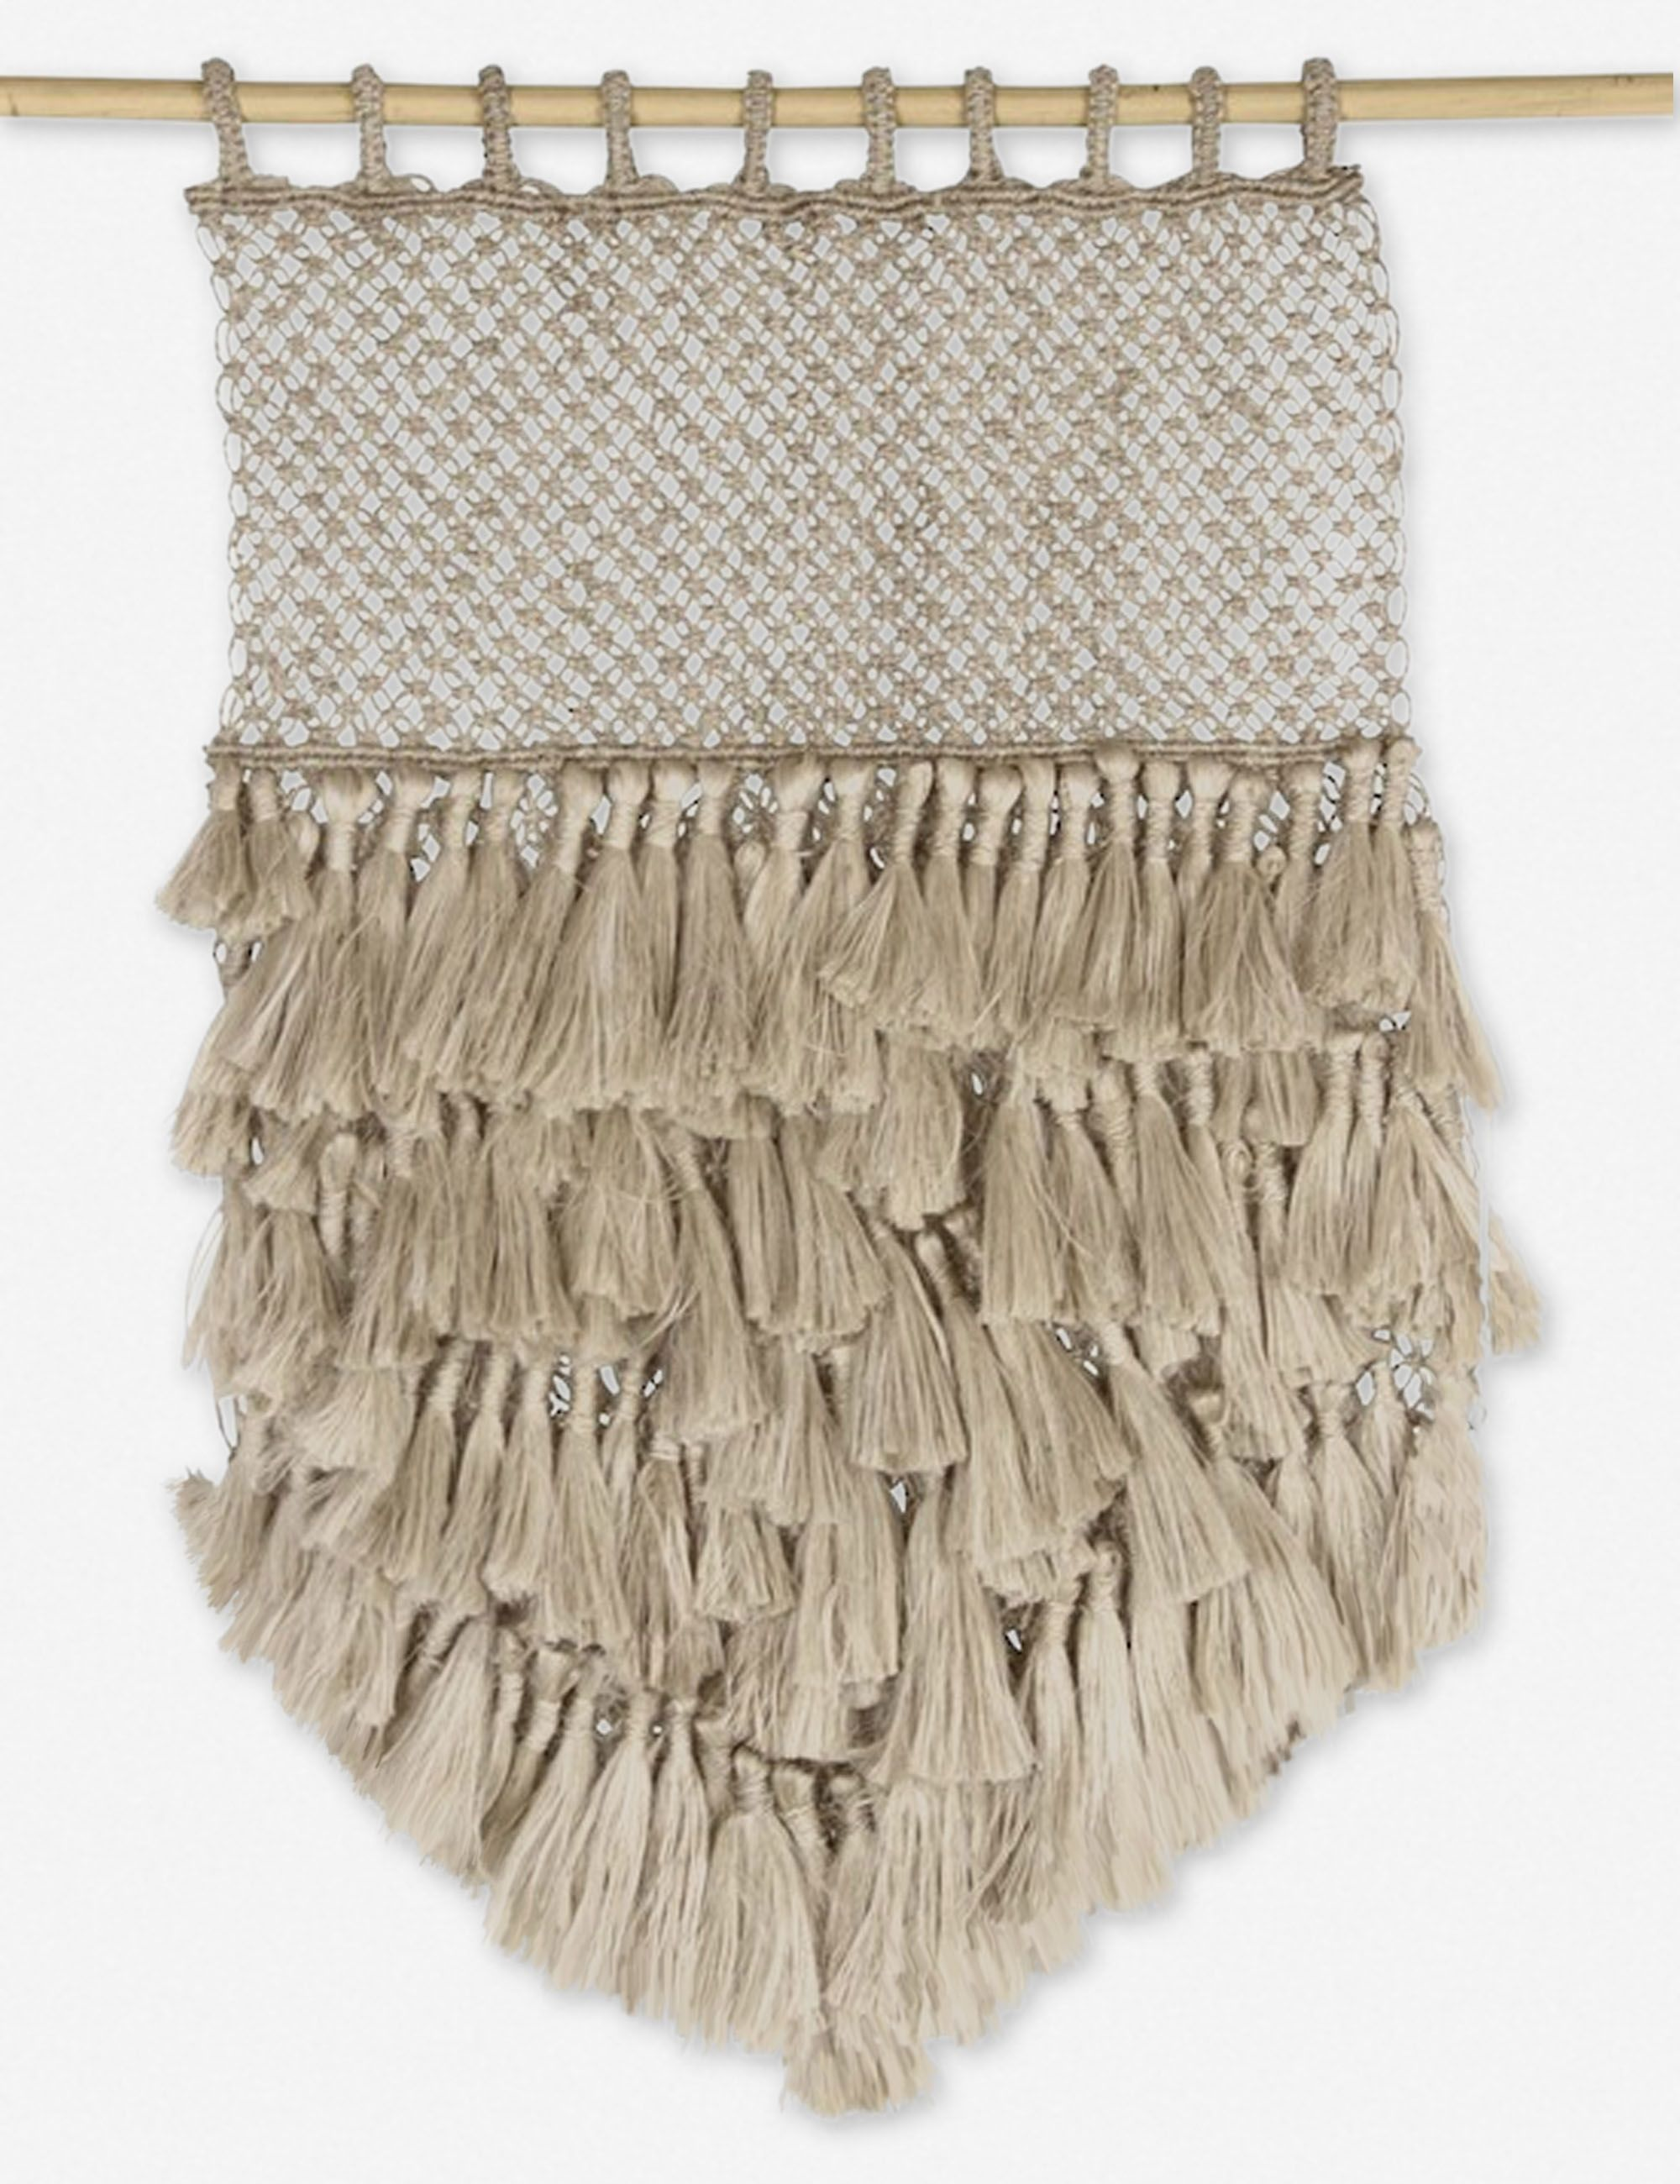 Comilla Jute Macrame Wall Hanging Natural With Tassels